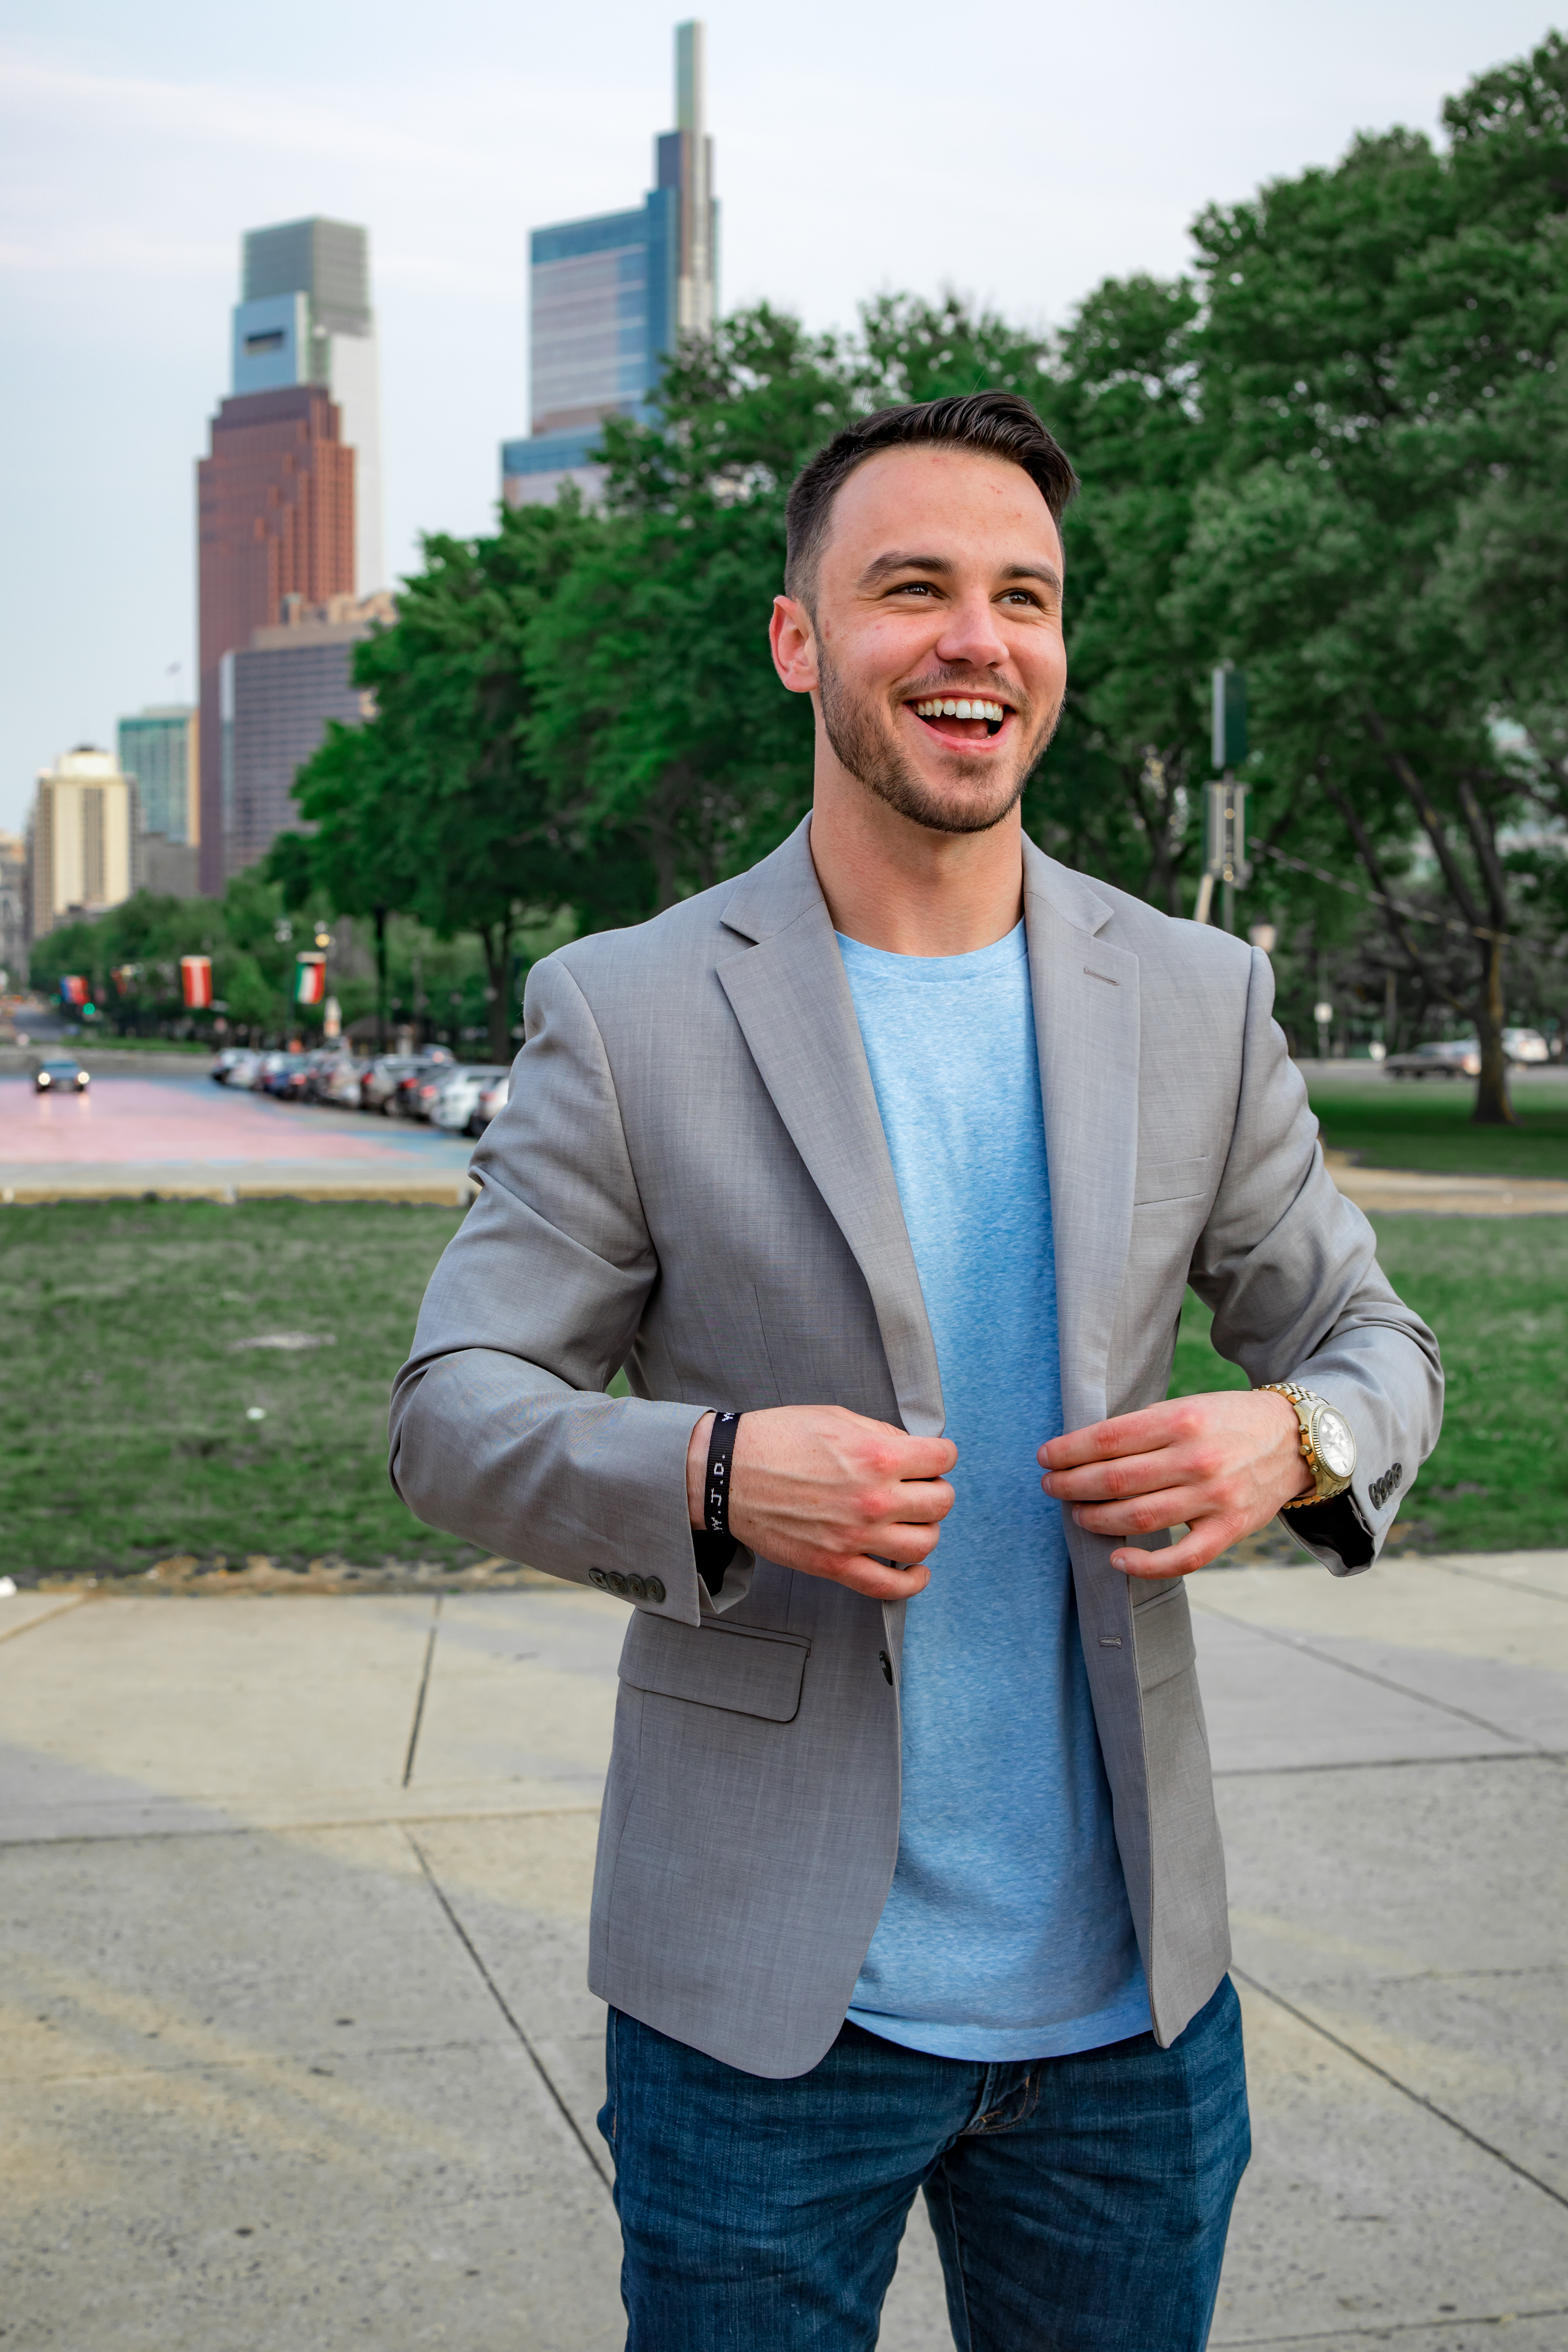 How Jason Bramble Went From Doubted Kid to 6-Figure Business Owner